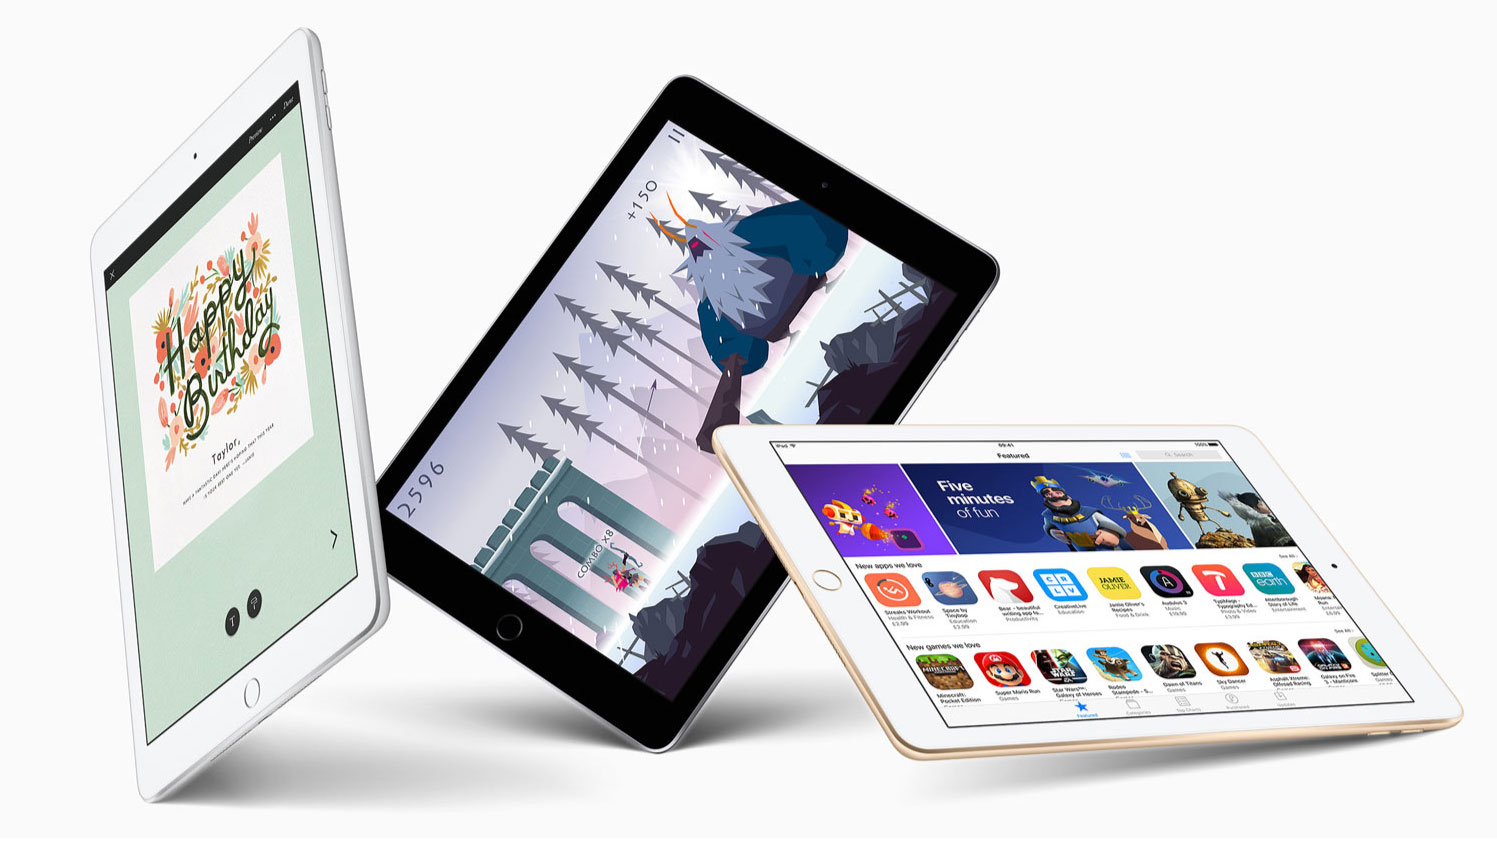 The best tablets you can buy in 2018